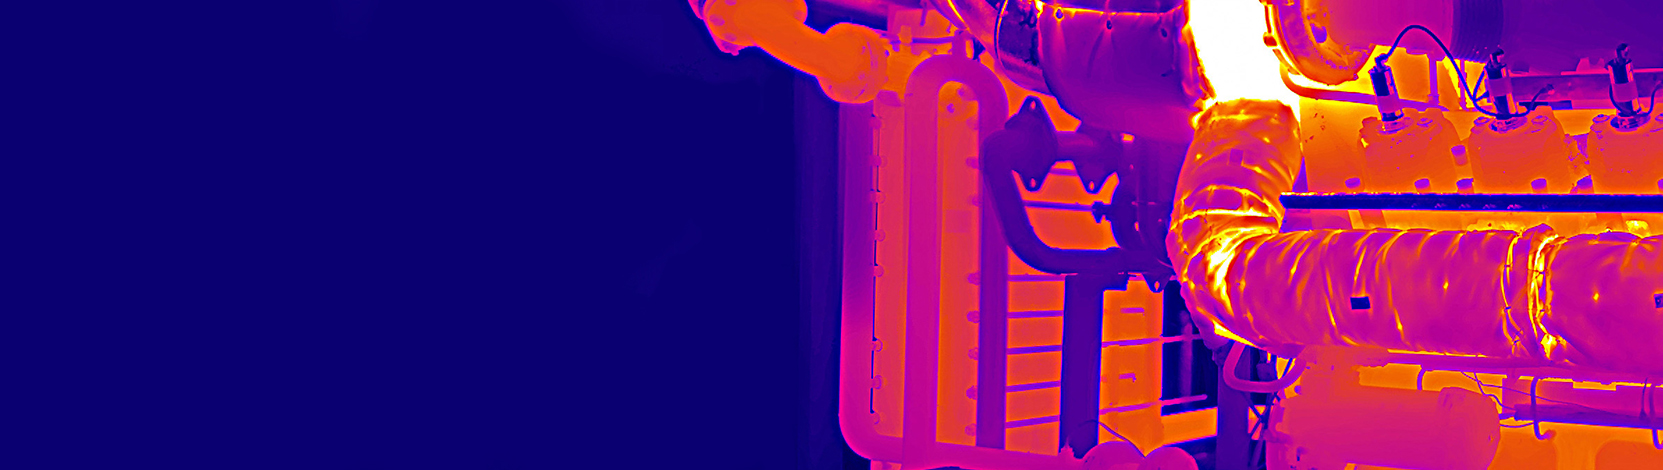 Thermography-Services